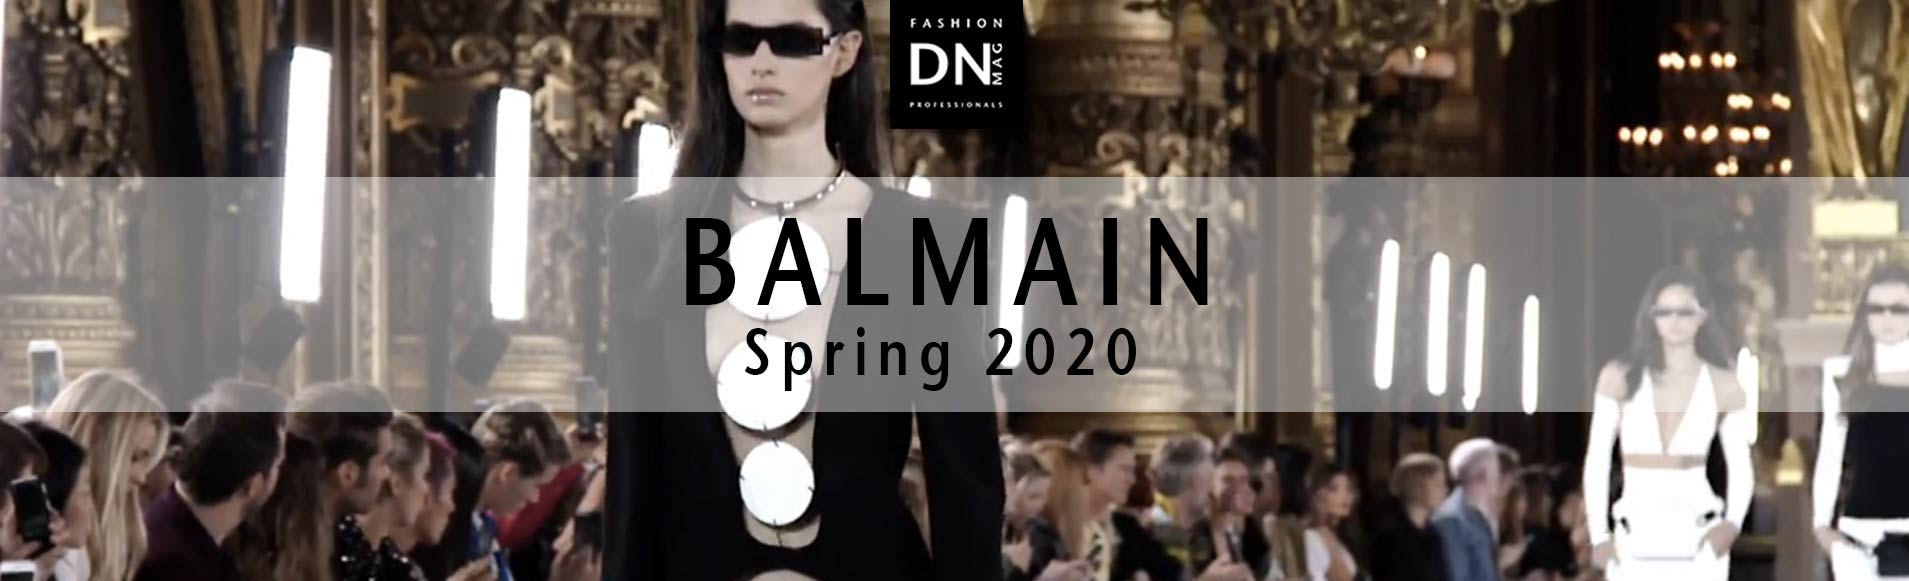 DNMAG-BALMAIN-WOMENSWEAR-SS20-COLLECTION